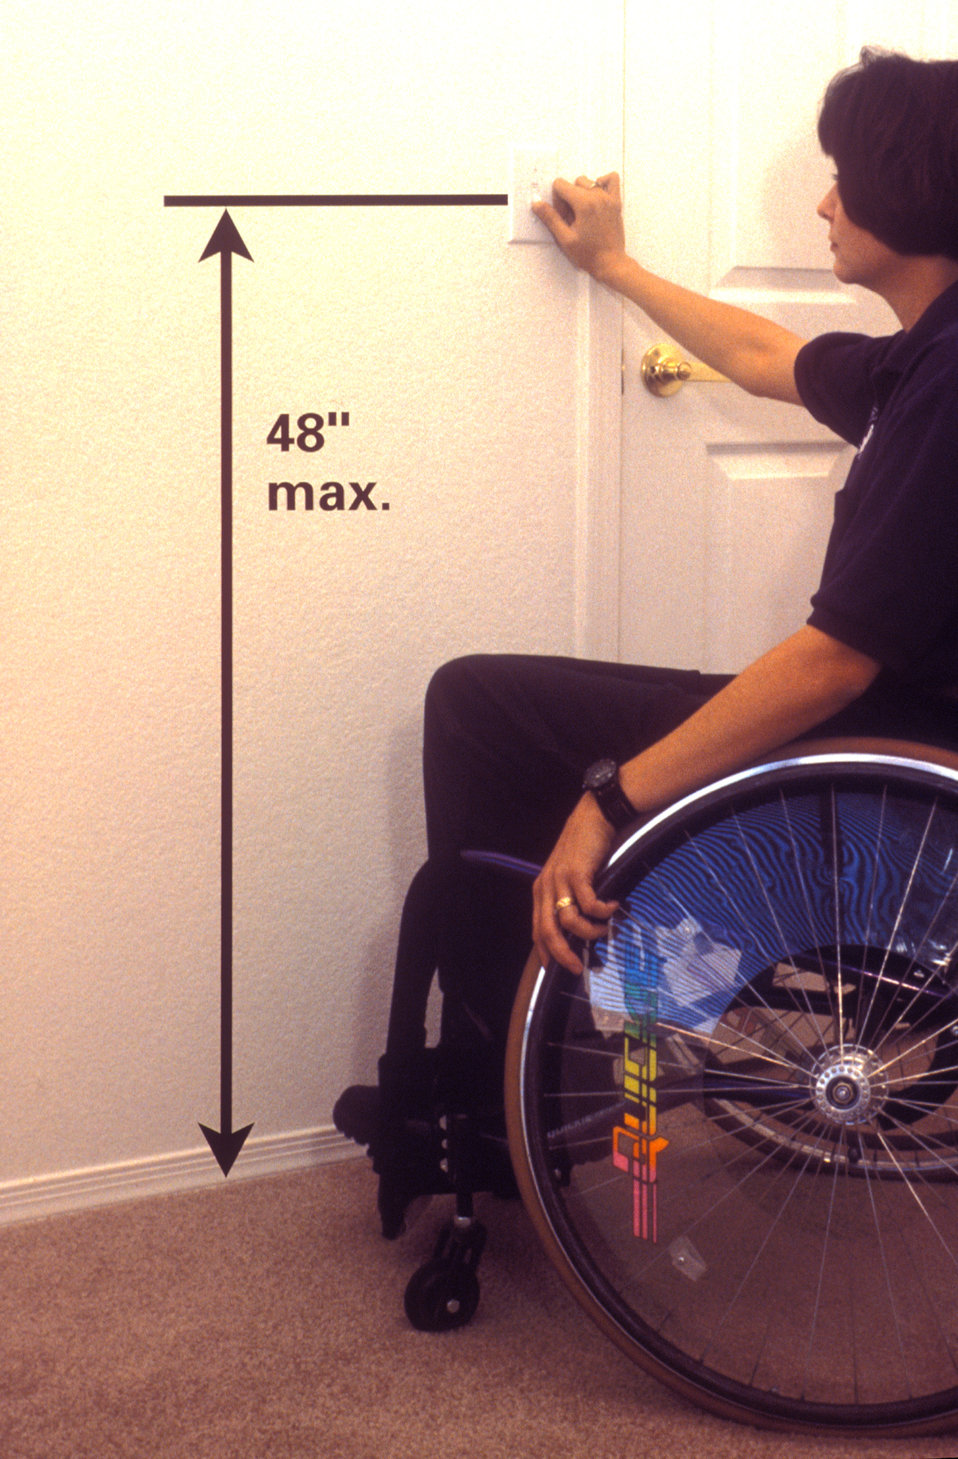 Photographed in 1997, this image depicted a wheelchair-seated woman as she was interacting with a wall-mounted light switch. Crucial to the